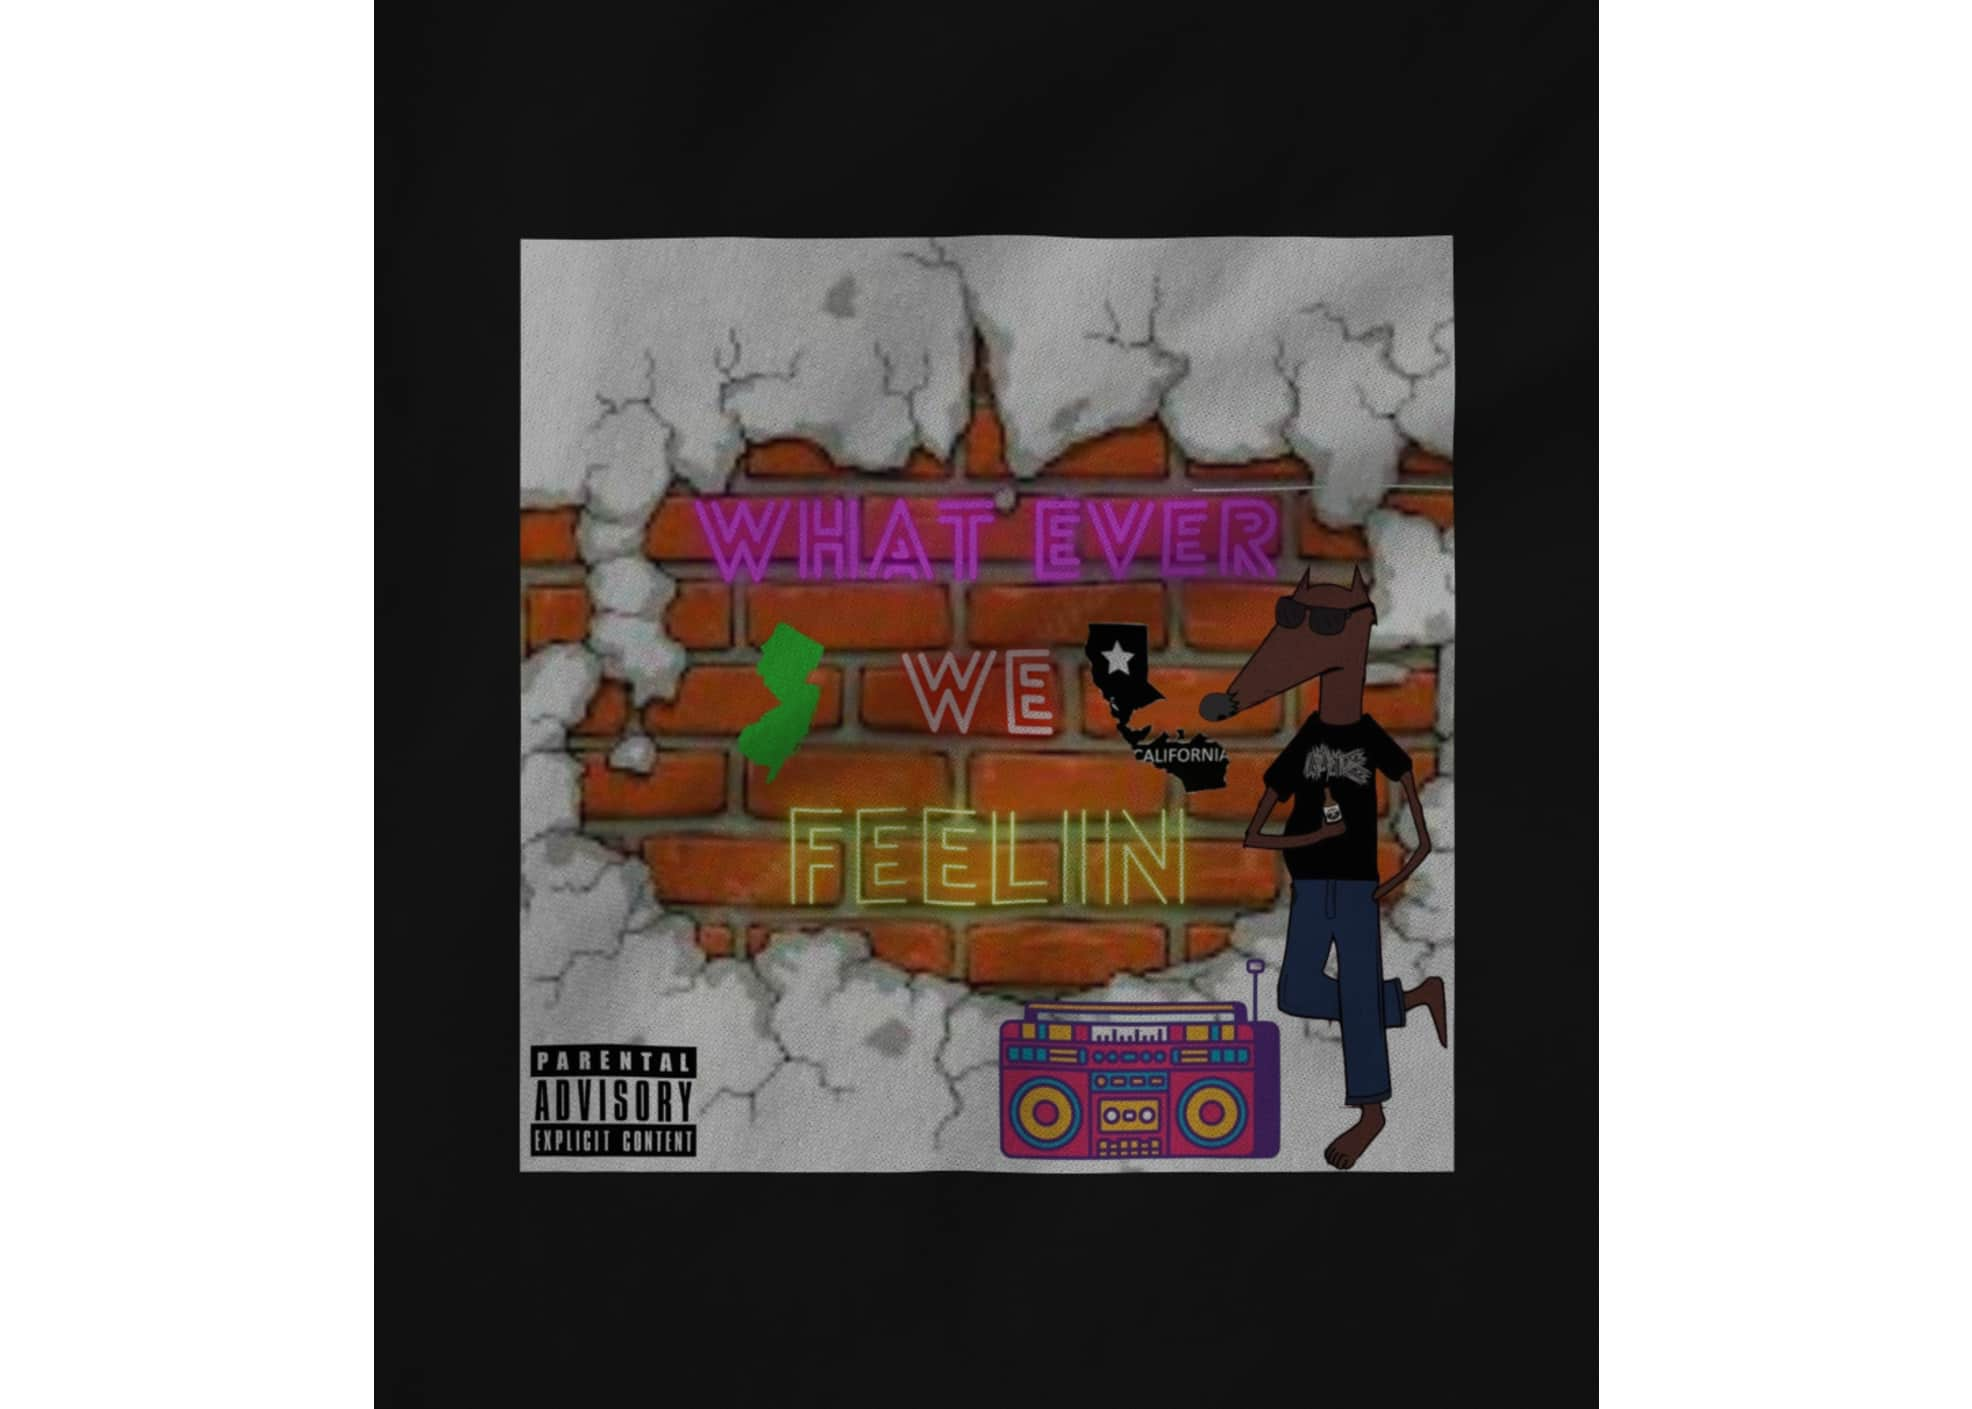 Whatever we feelin radio what ever we feelin radio logo 1620135481